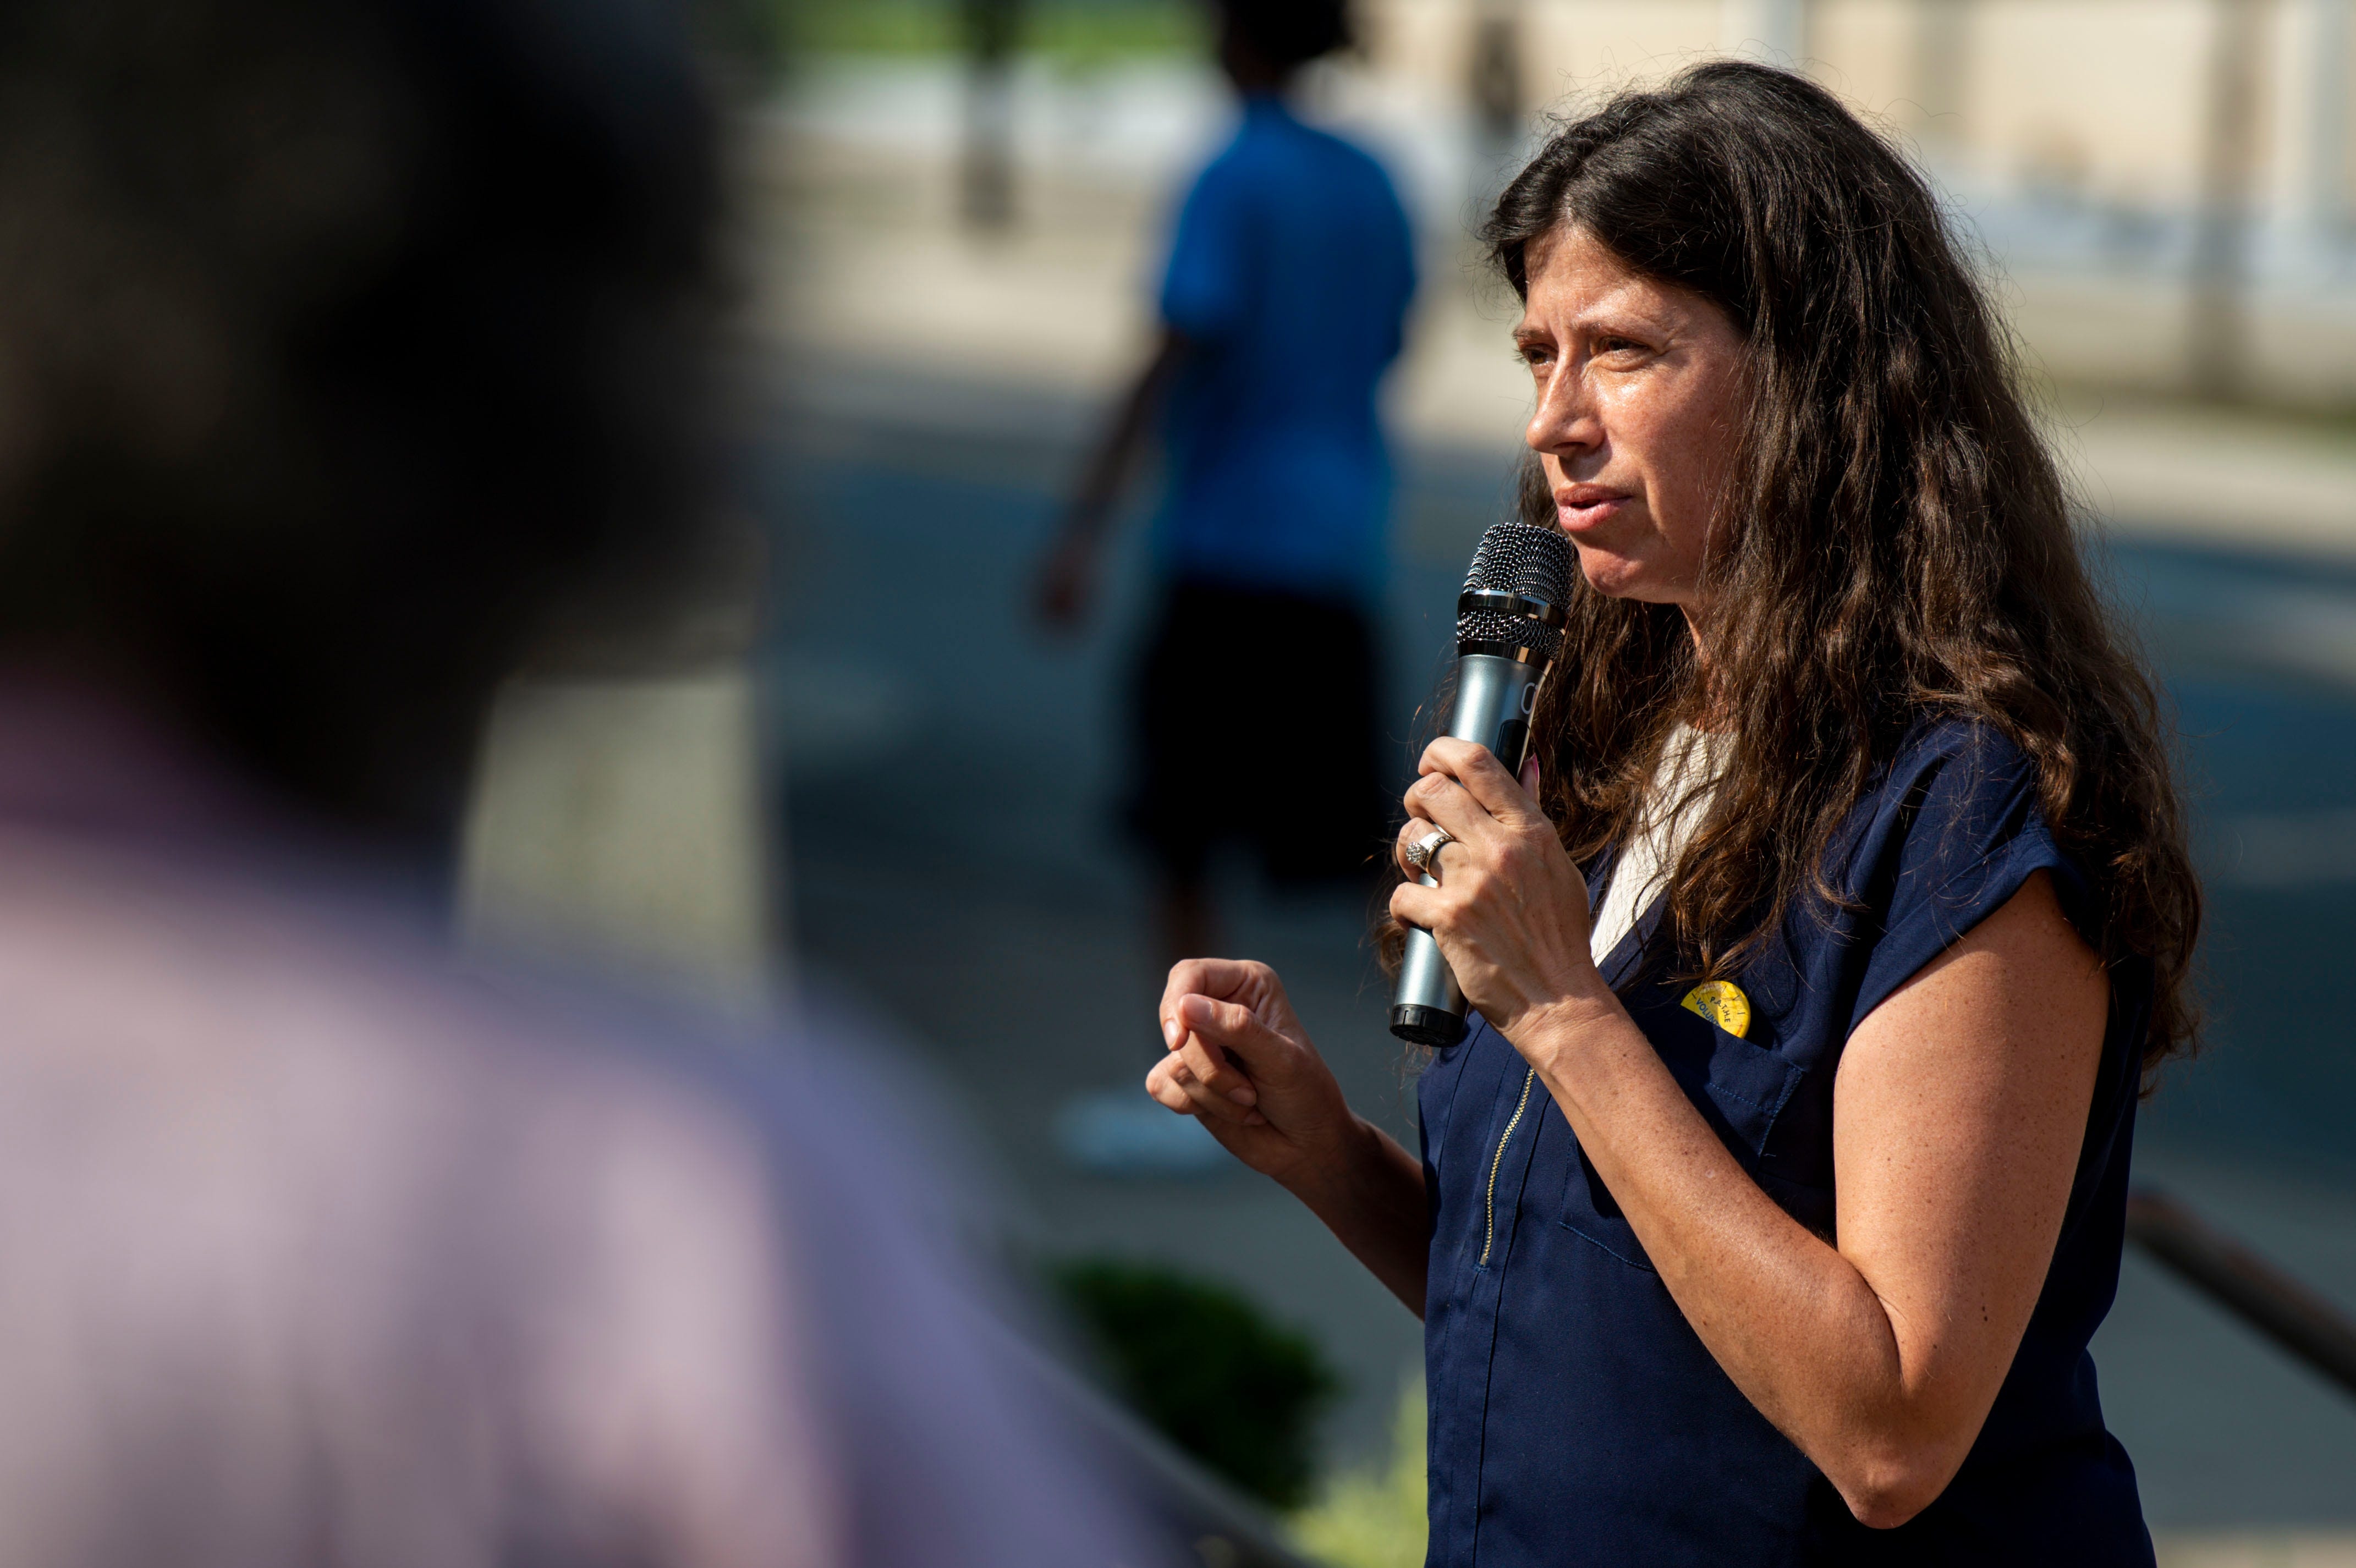 Melissa Cherry speaks during a press conference held by People's Alliance for Transit, Housing and Employment outside the Justice A. A. Birch Building in Nashville, Tenn., on Wednesday, July 28, 2021.